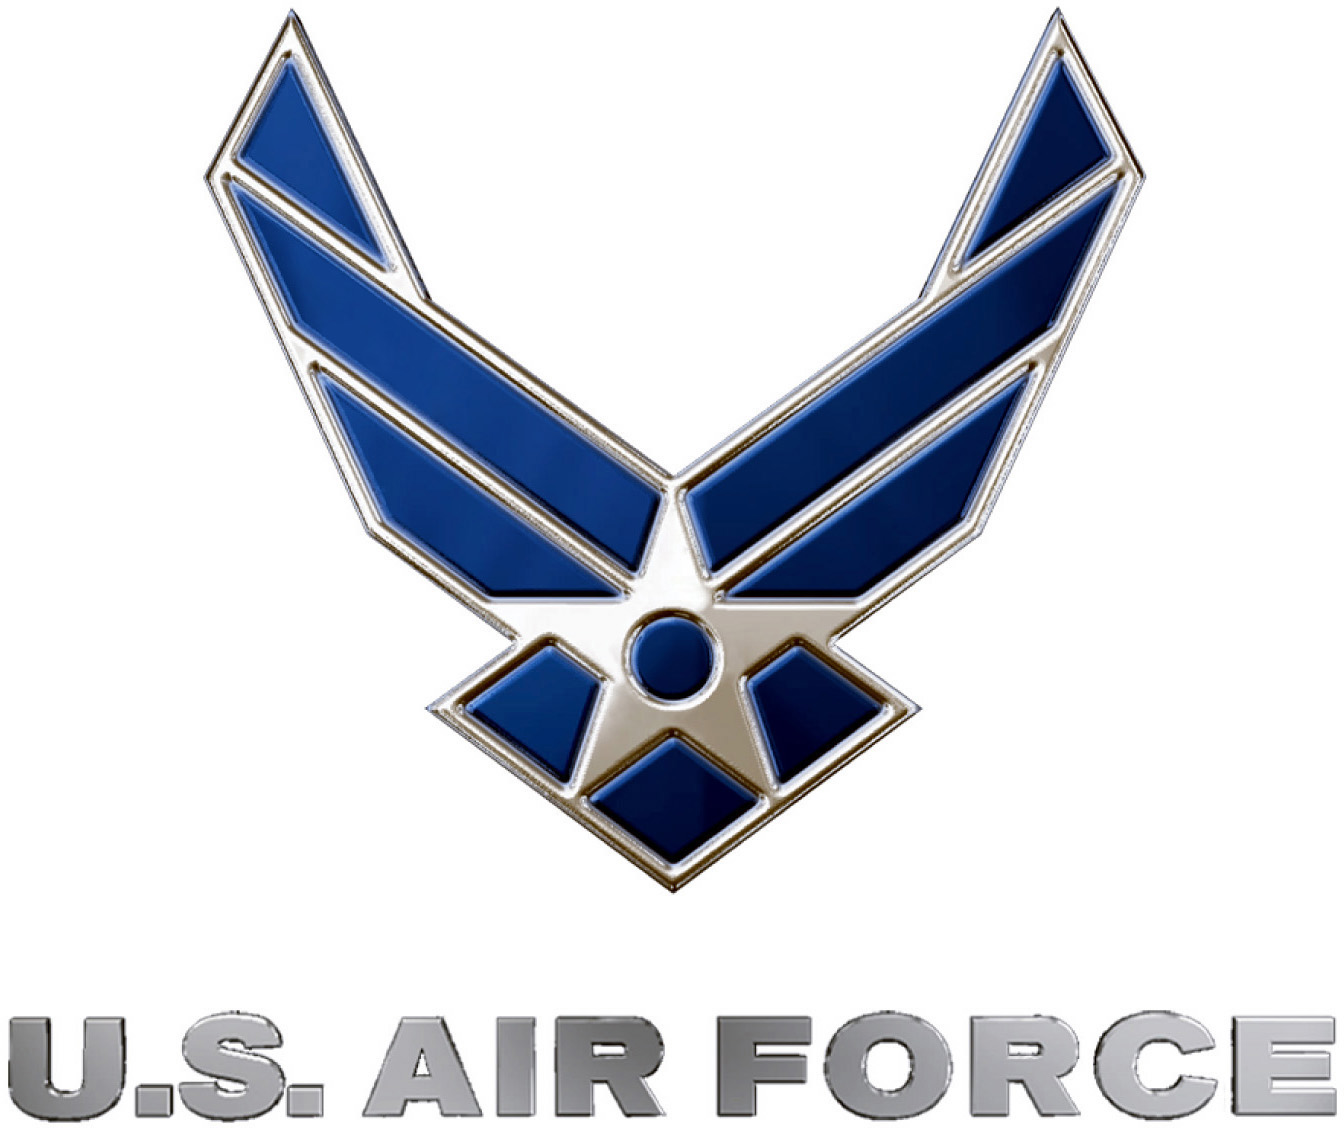 United_States_Air_Force_logo,_blue_and_silver